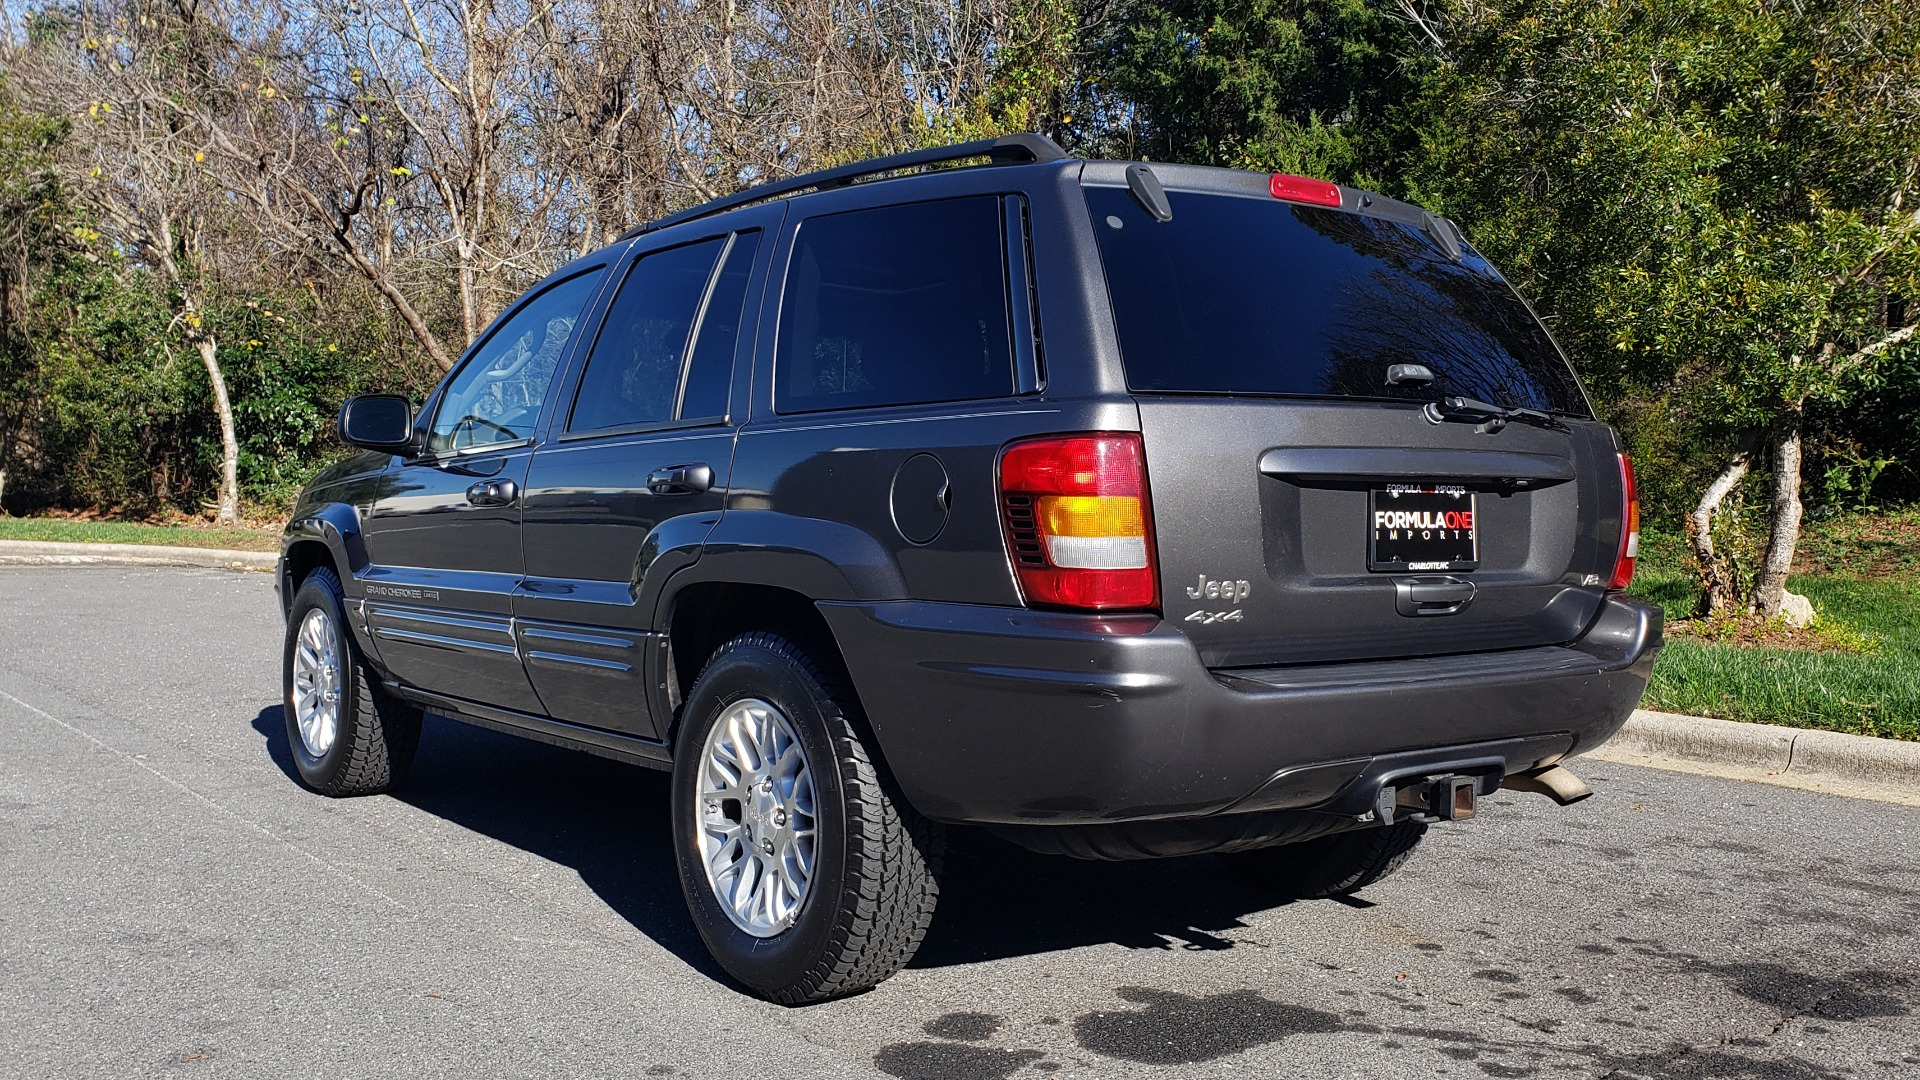 Used 2002 Jeep GRAND CHEROKEE LIMITED 4X4 / SUNROOF / 4.7L V8 / 5-SPD AUTO / CLD WTHR for sale Sold at Formula Imports in Charlotte NC 28227 3